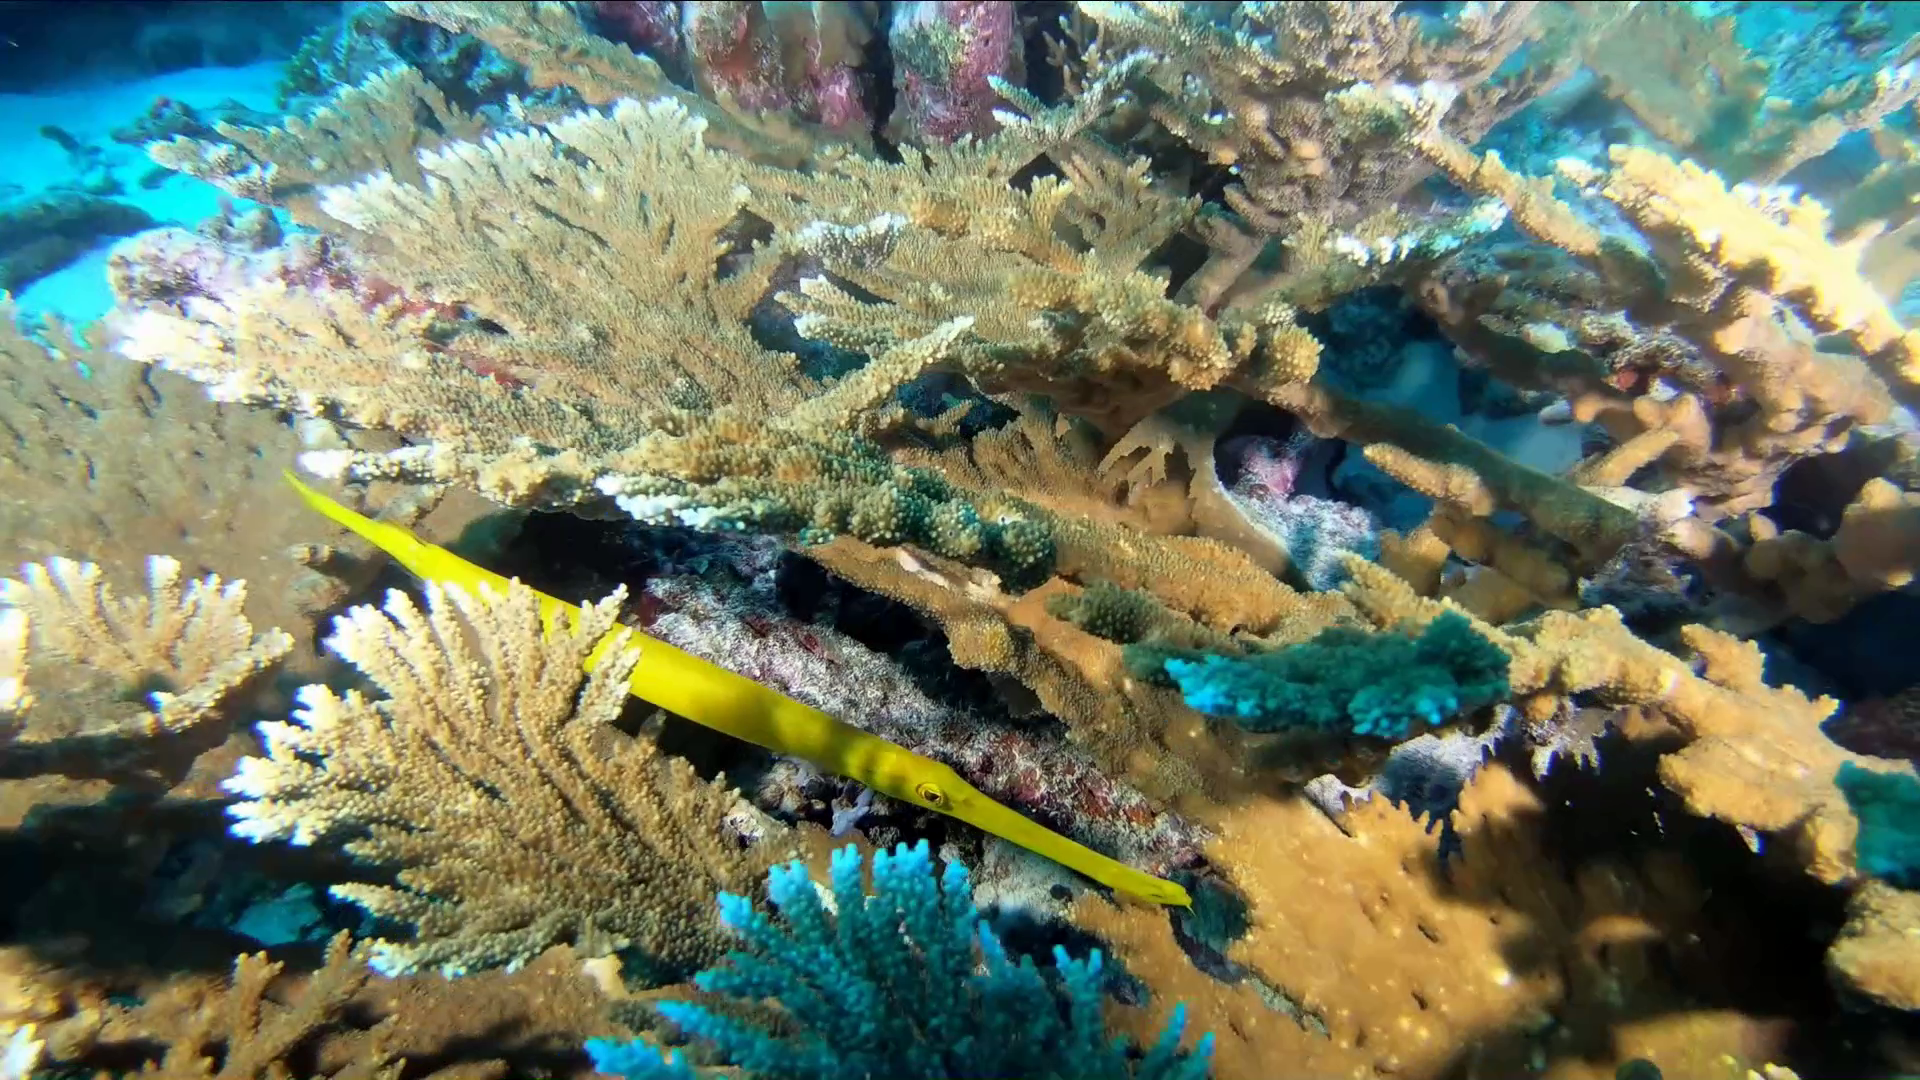 Pesce Trombetta cinese - Aulostomus chinensis - Chinese Trumpetfish - intotheblue.it